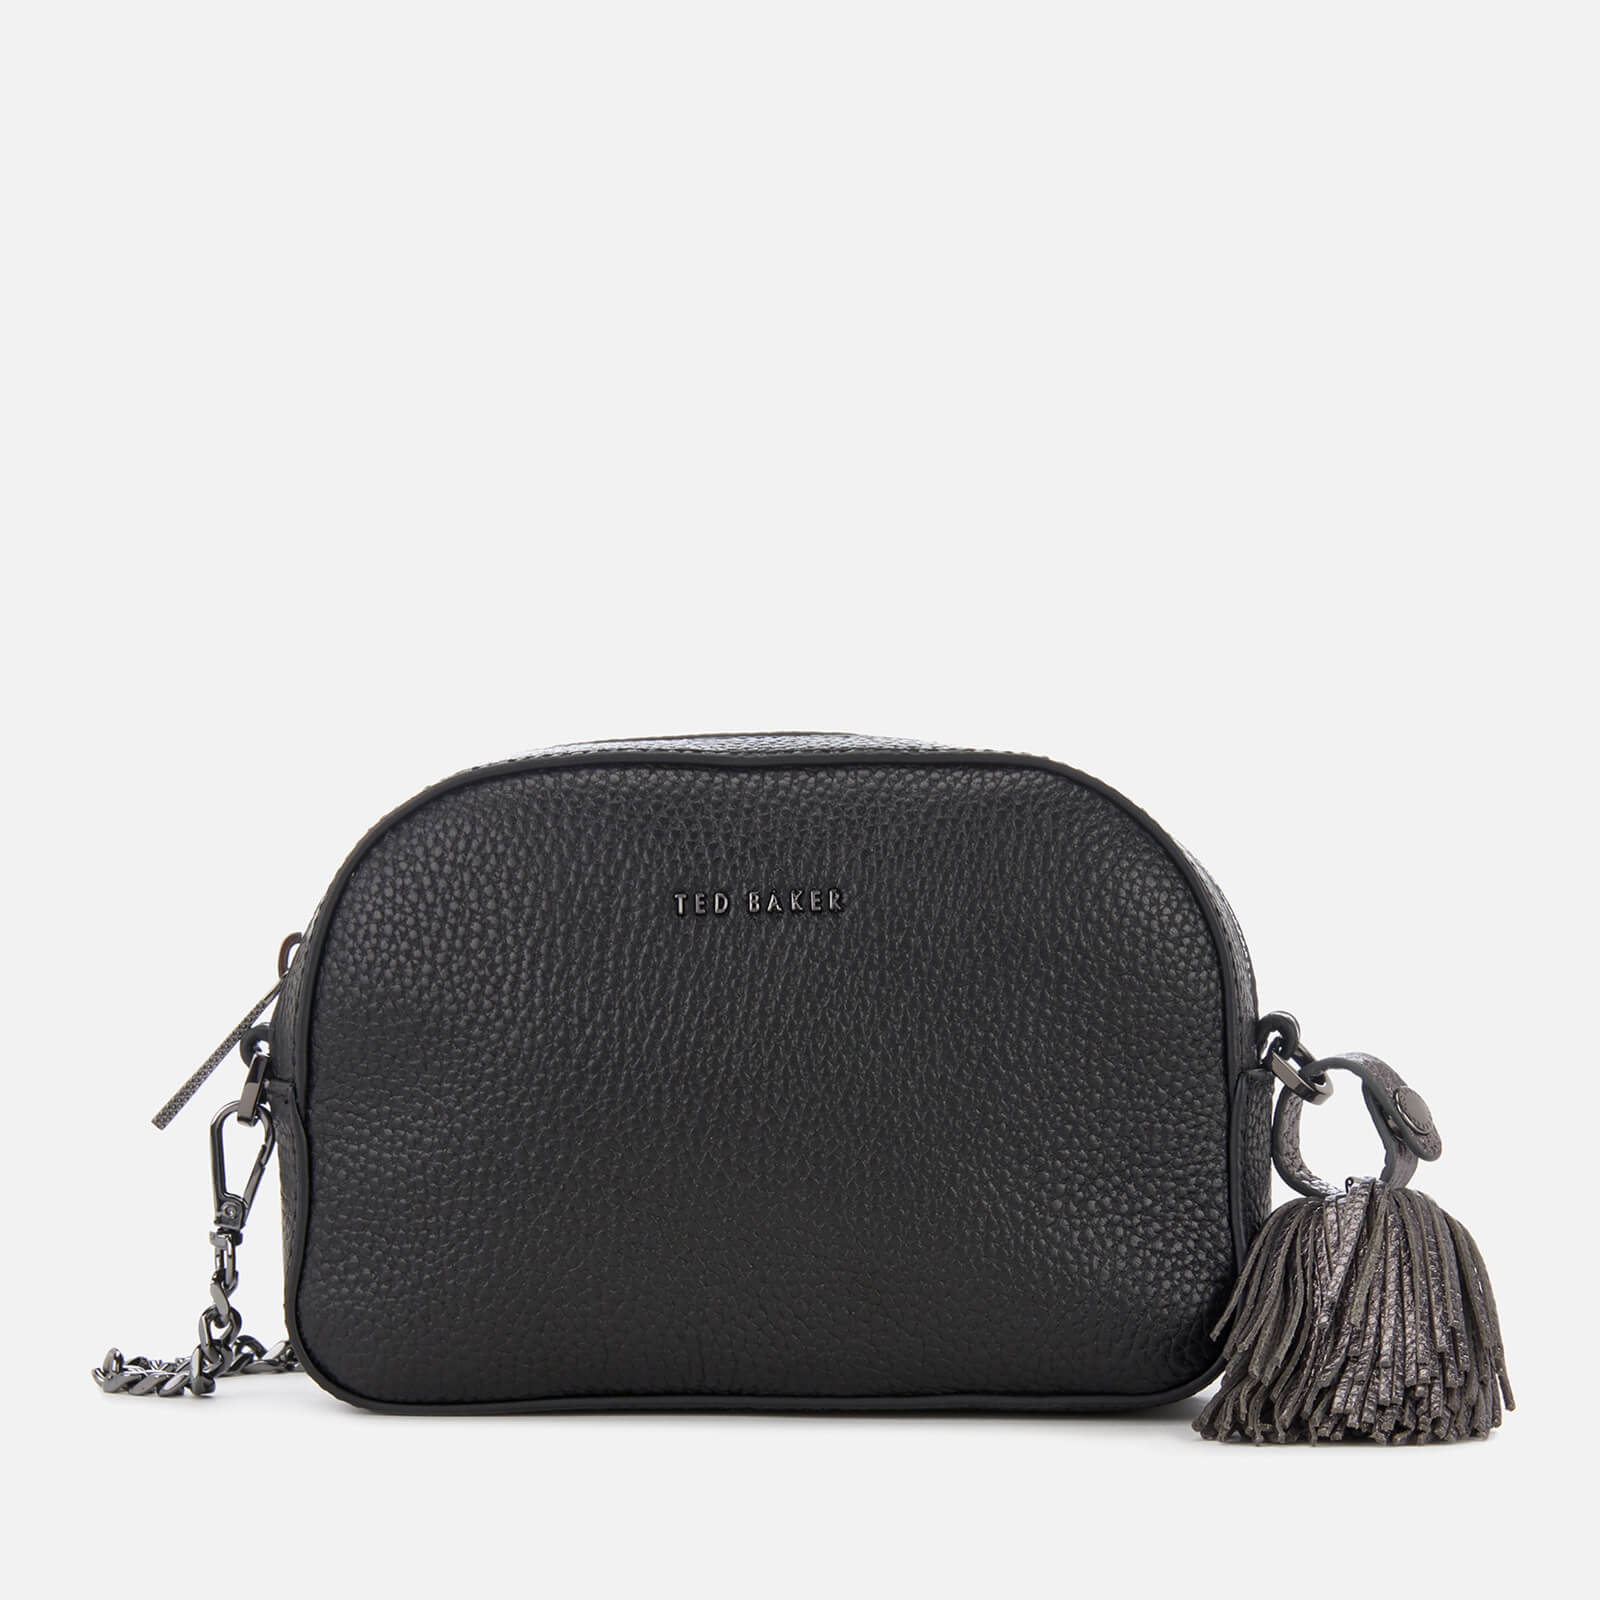 ff7bc3180 Ted Baker Women s Madiiee Leather Pom Belt Bag - Black Womens Accessories